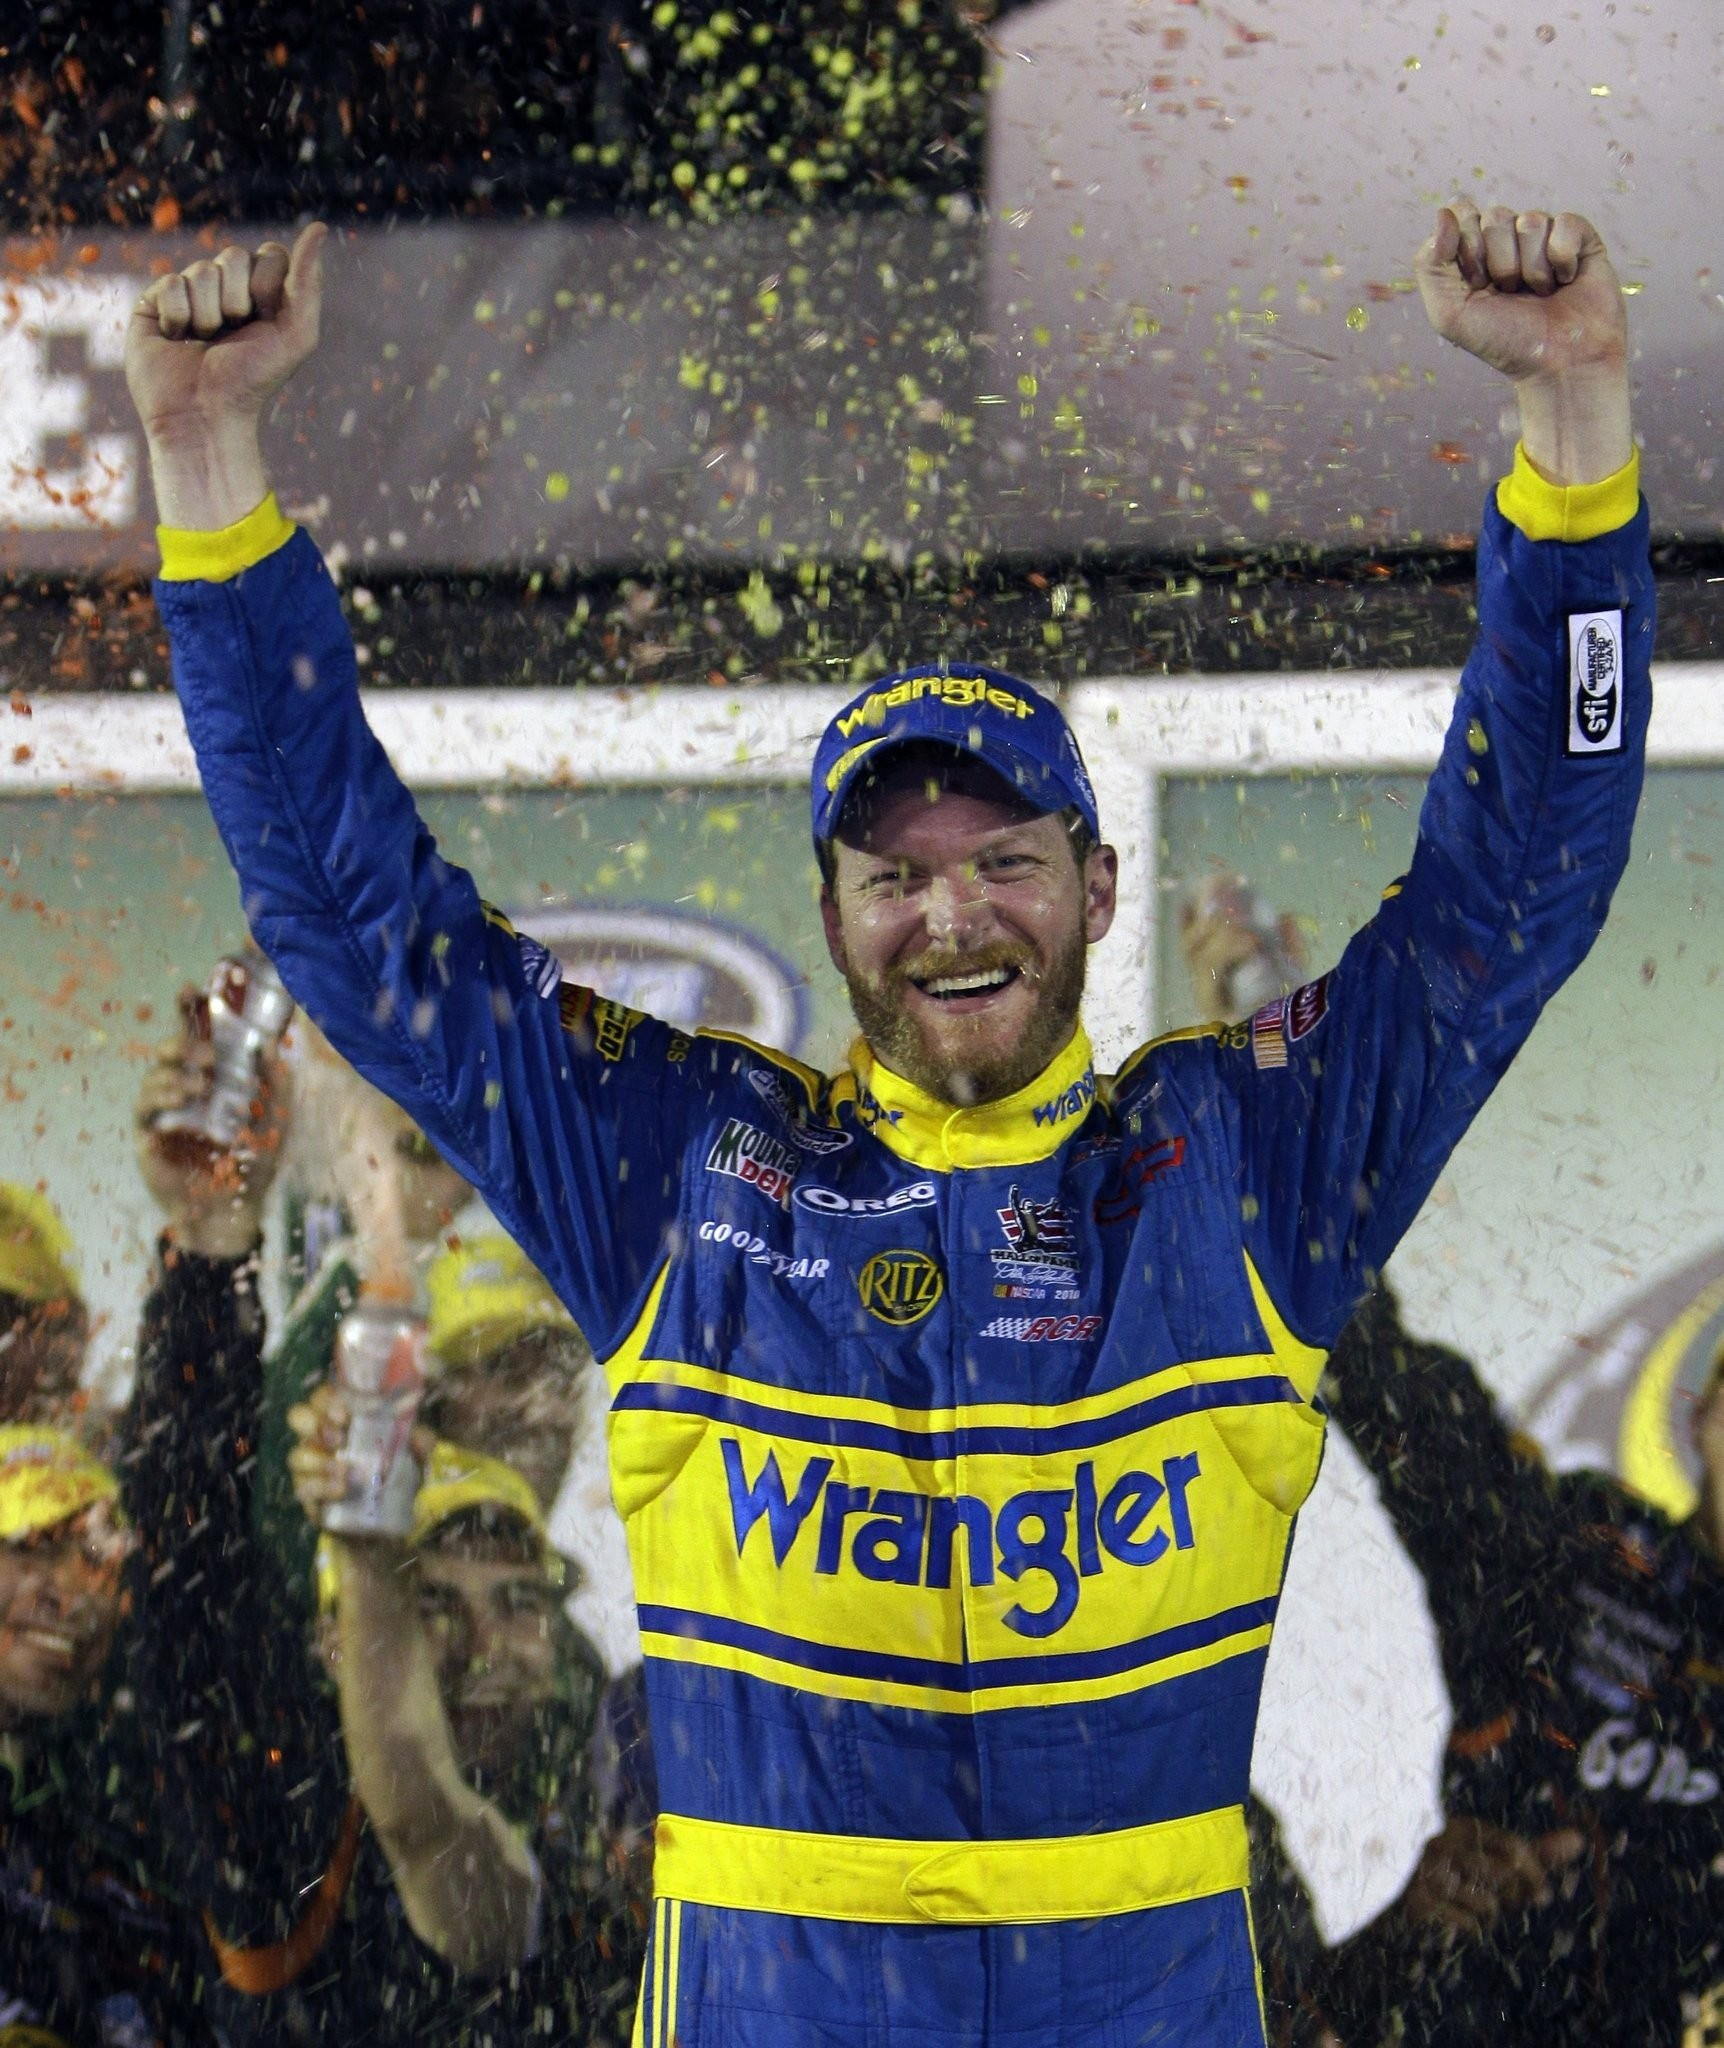 Dale Earnhardt Jr Puts No 3 Back In Victory Lane Al Com How much is teresa earnhardt worth? dale earnhardt jr puts no 3 back in